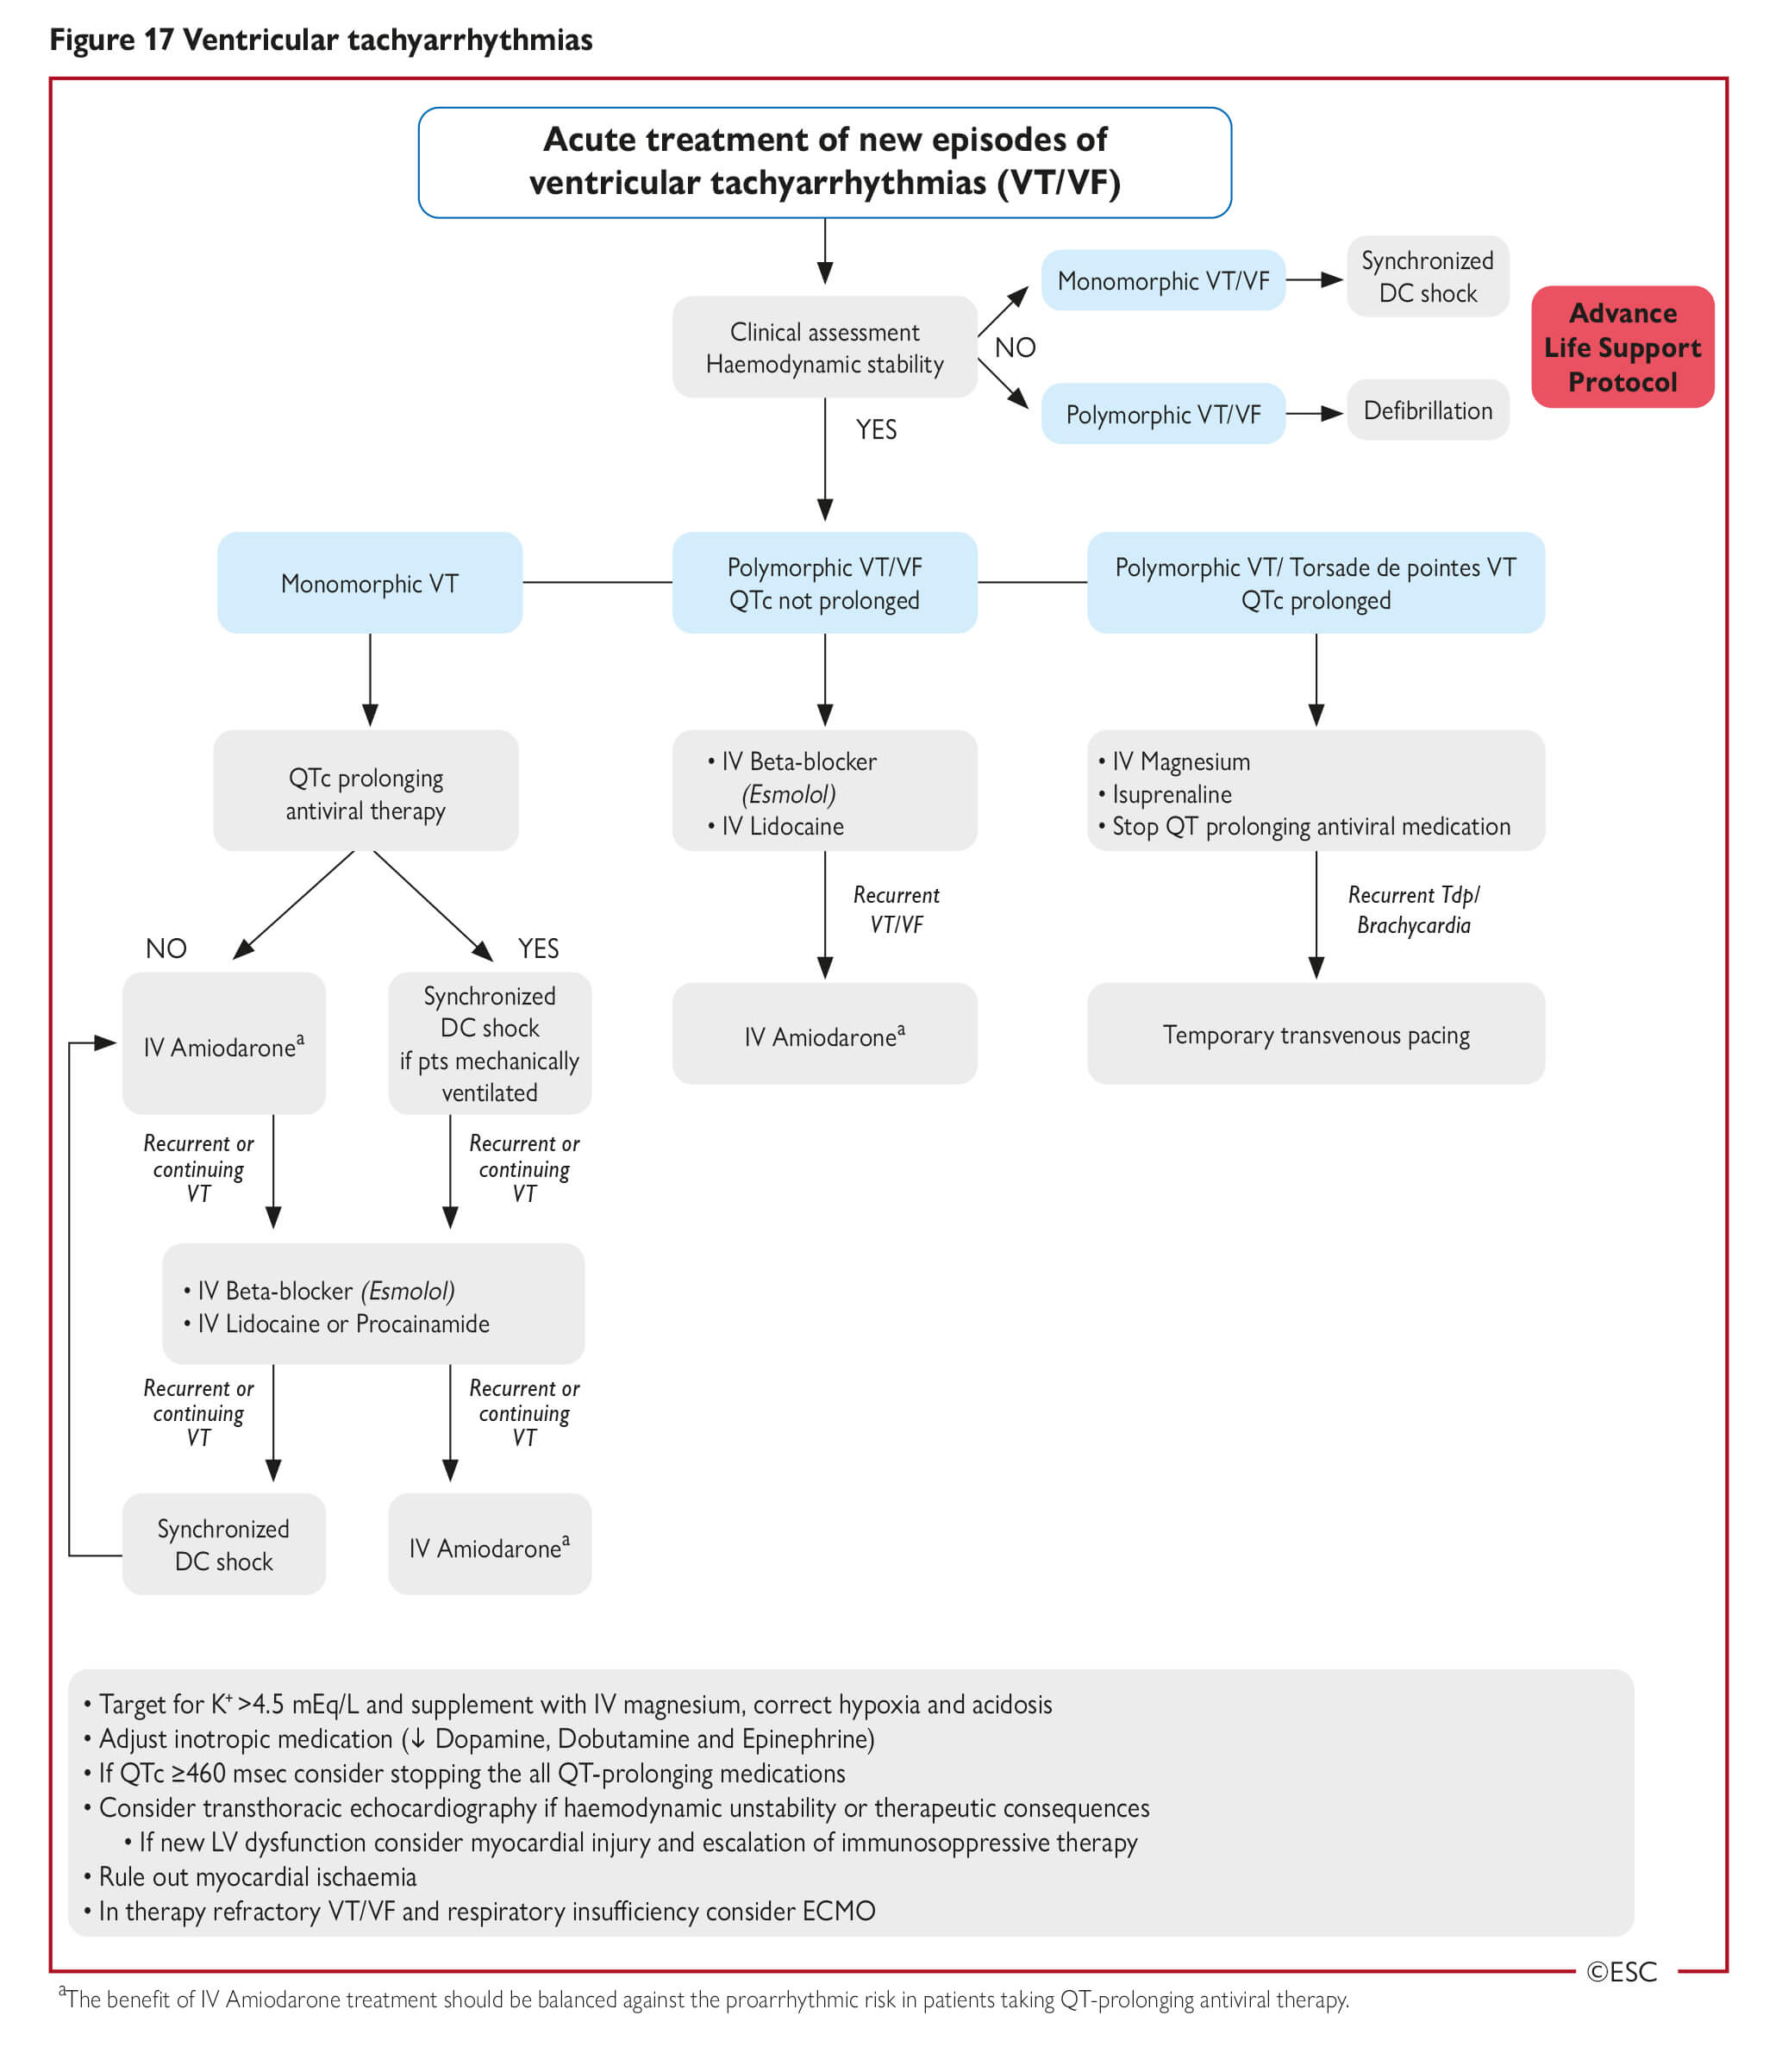 Esc Guidance For The Diagnosis And Management Of Cv Disease During